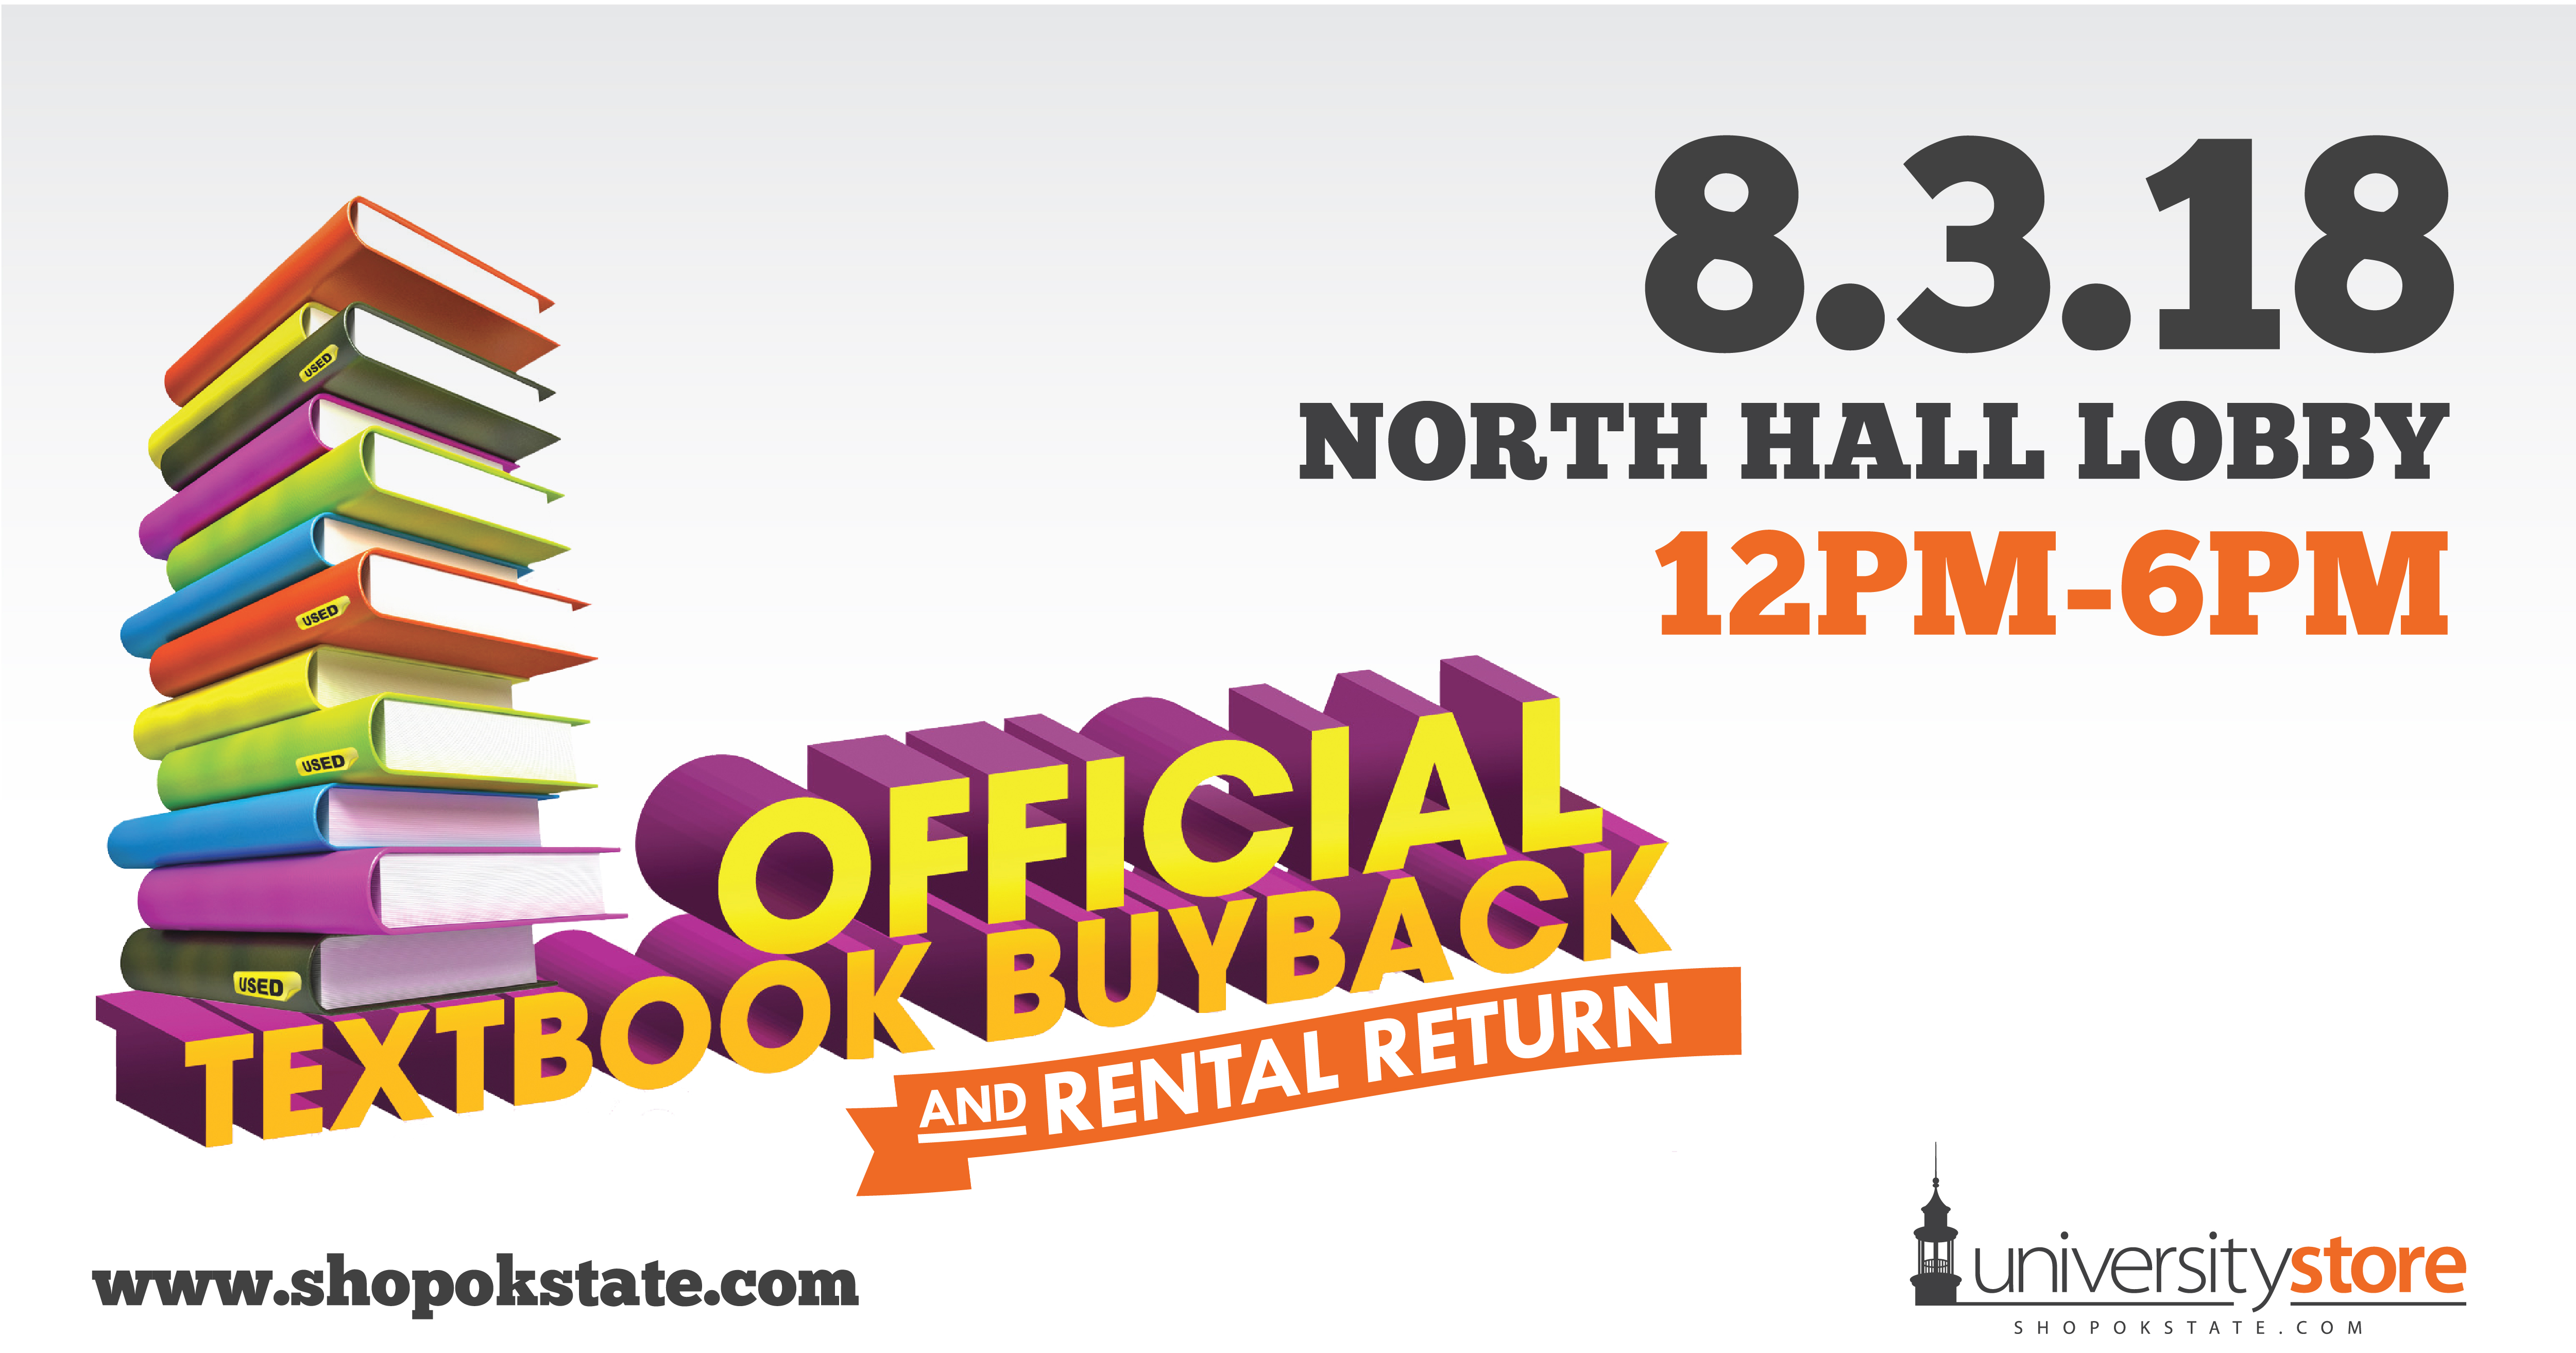 Official Textbook Buyback and Rental Return | 8/3/18 North Hall Lobby 12 PM-6 PM